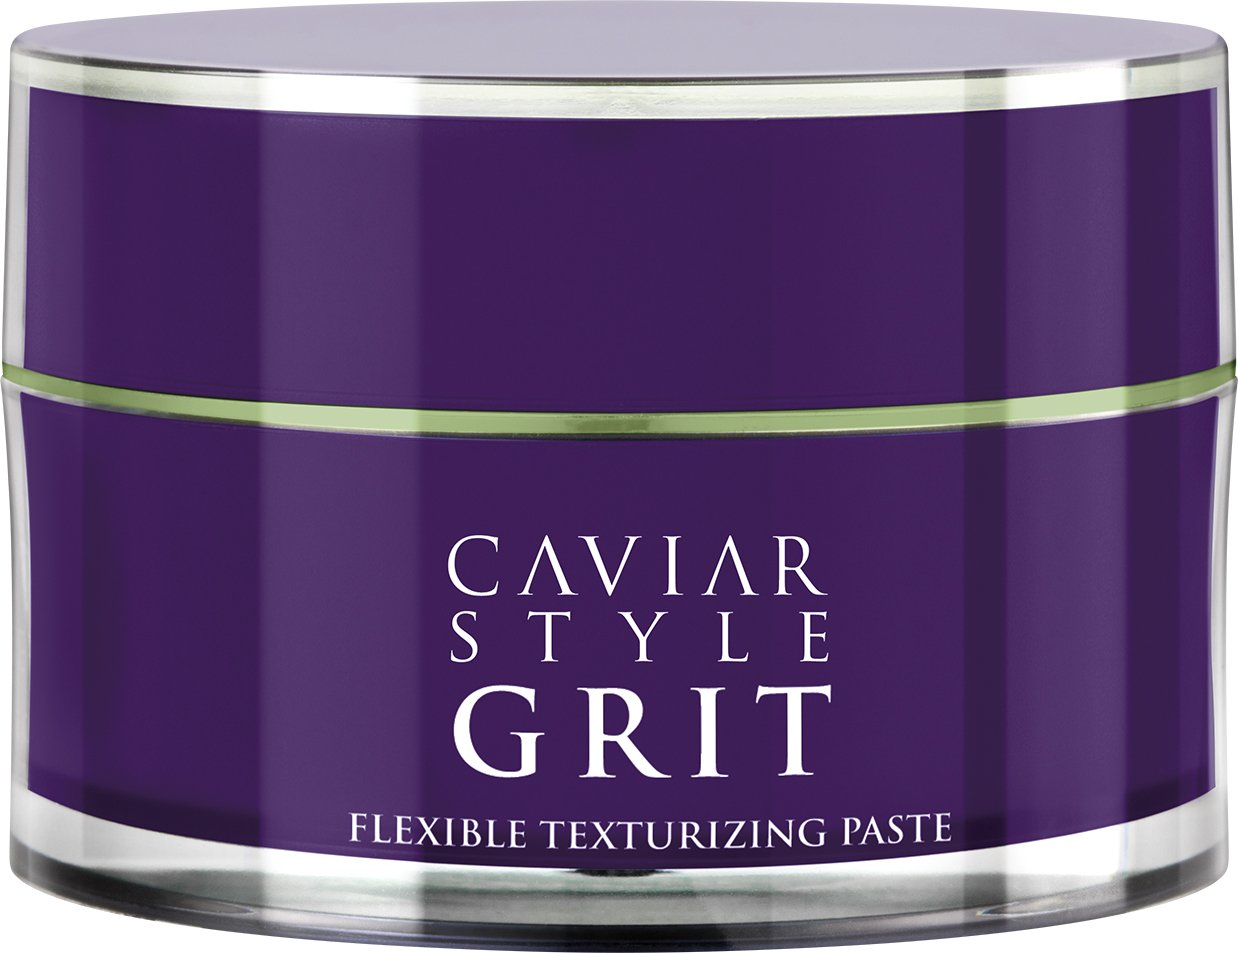 Alterna Caviar Style Grit Flexible Texturizing Paste, 1.85 oz. U-HC-11541